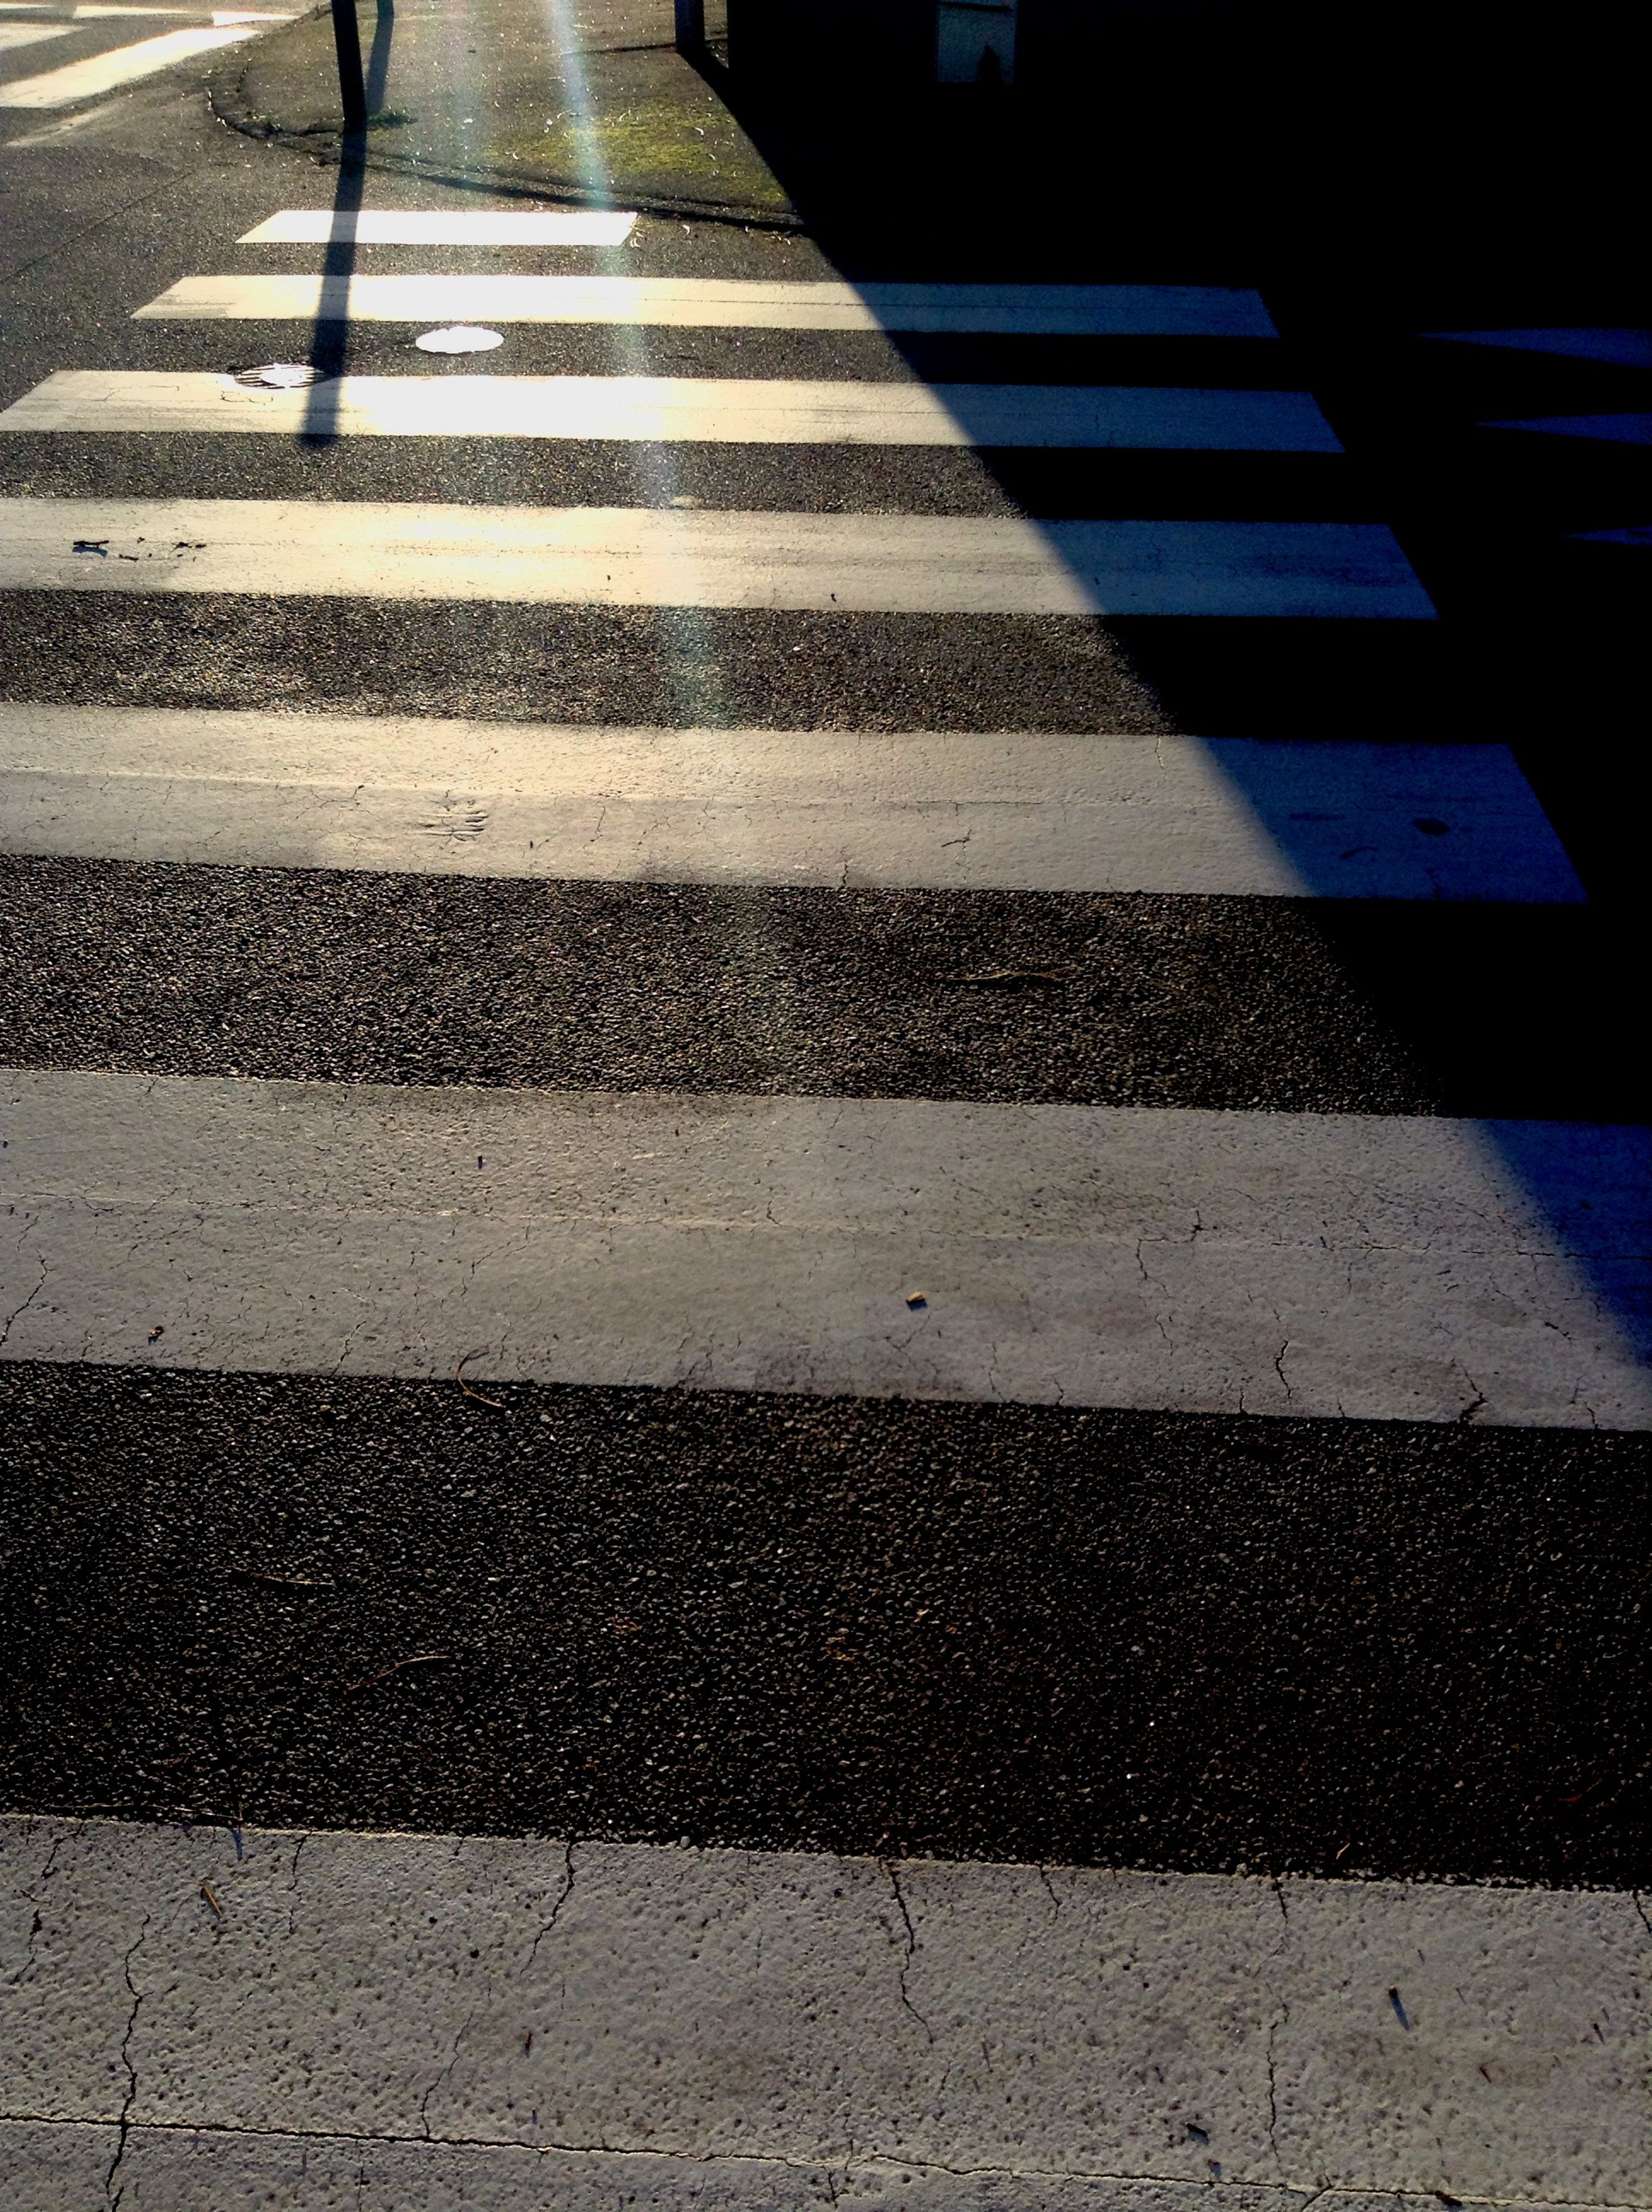 transportation, road marking, asphalt, street, the way forward, road, high angle view, zebra crossing, diminishing perspective, shadow, sunlight, vanishing point, day, outdoors, sidewalk, surface level, no people, crosswalk, steps, pattern